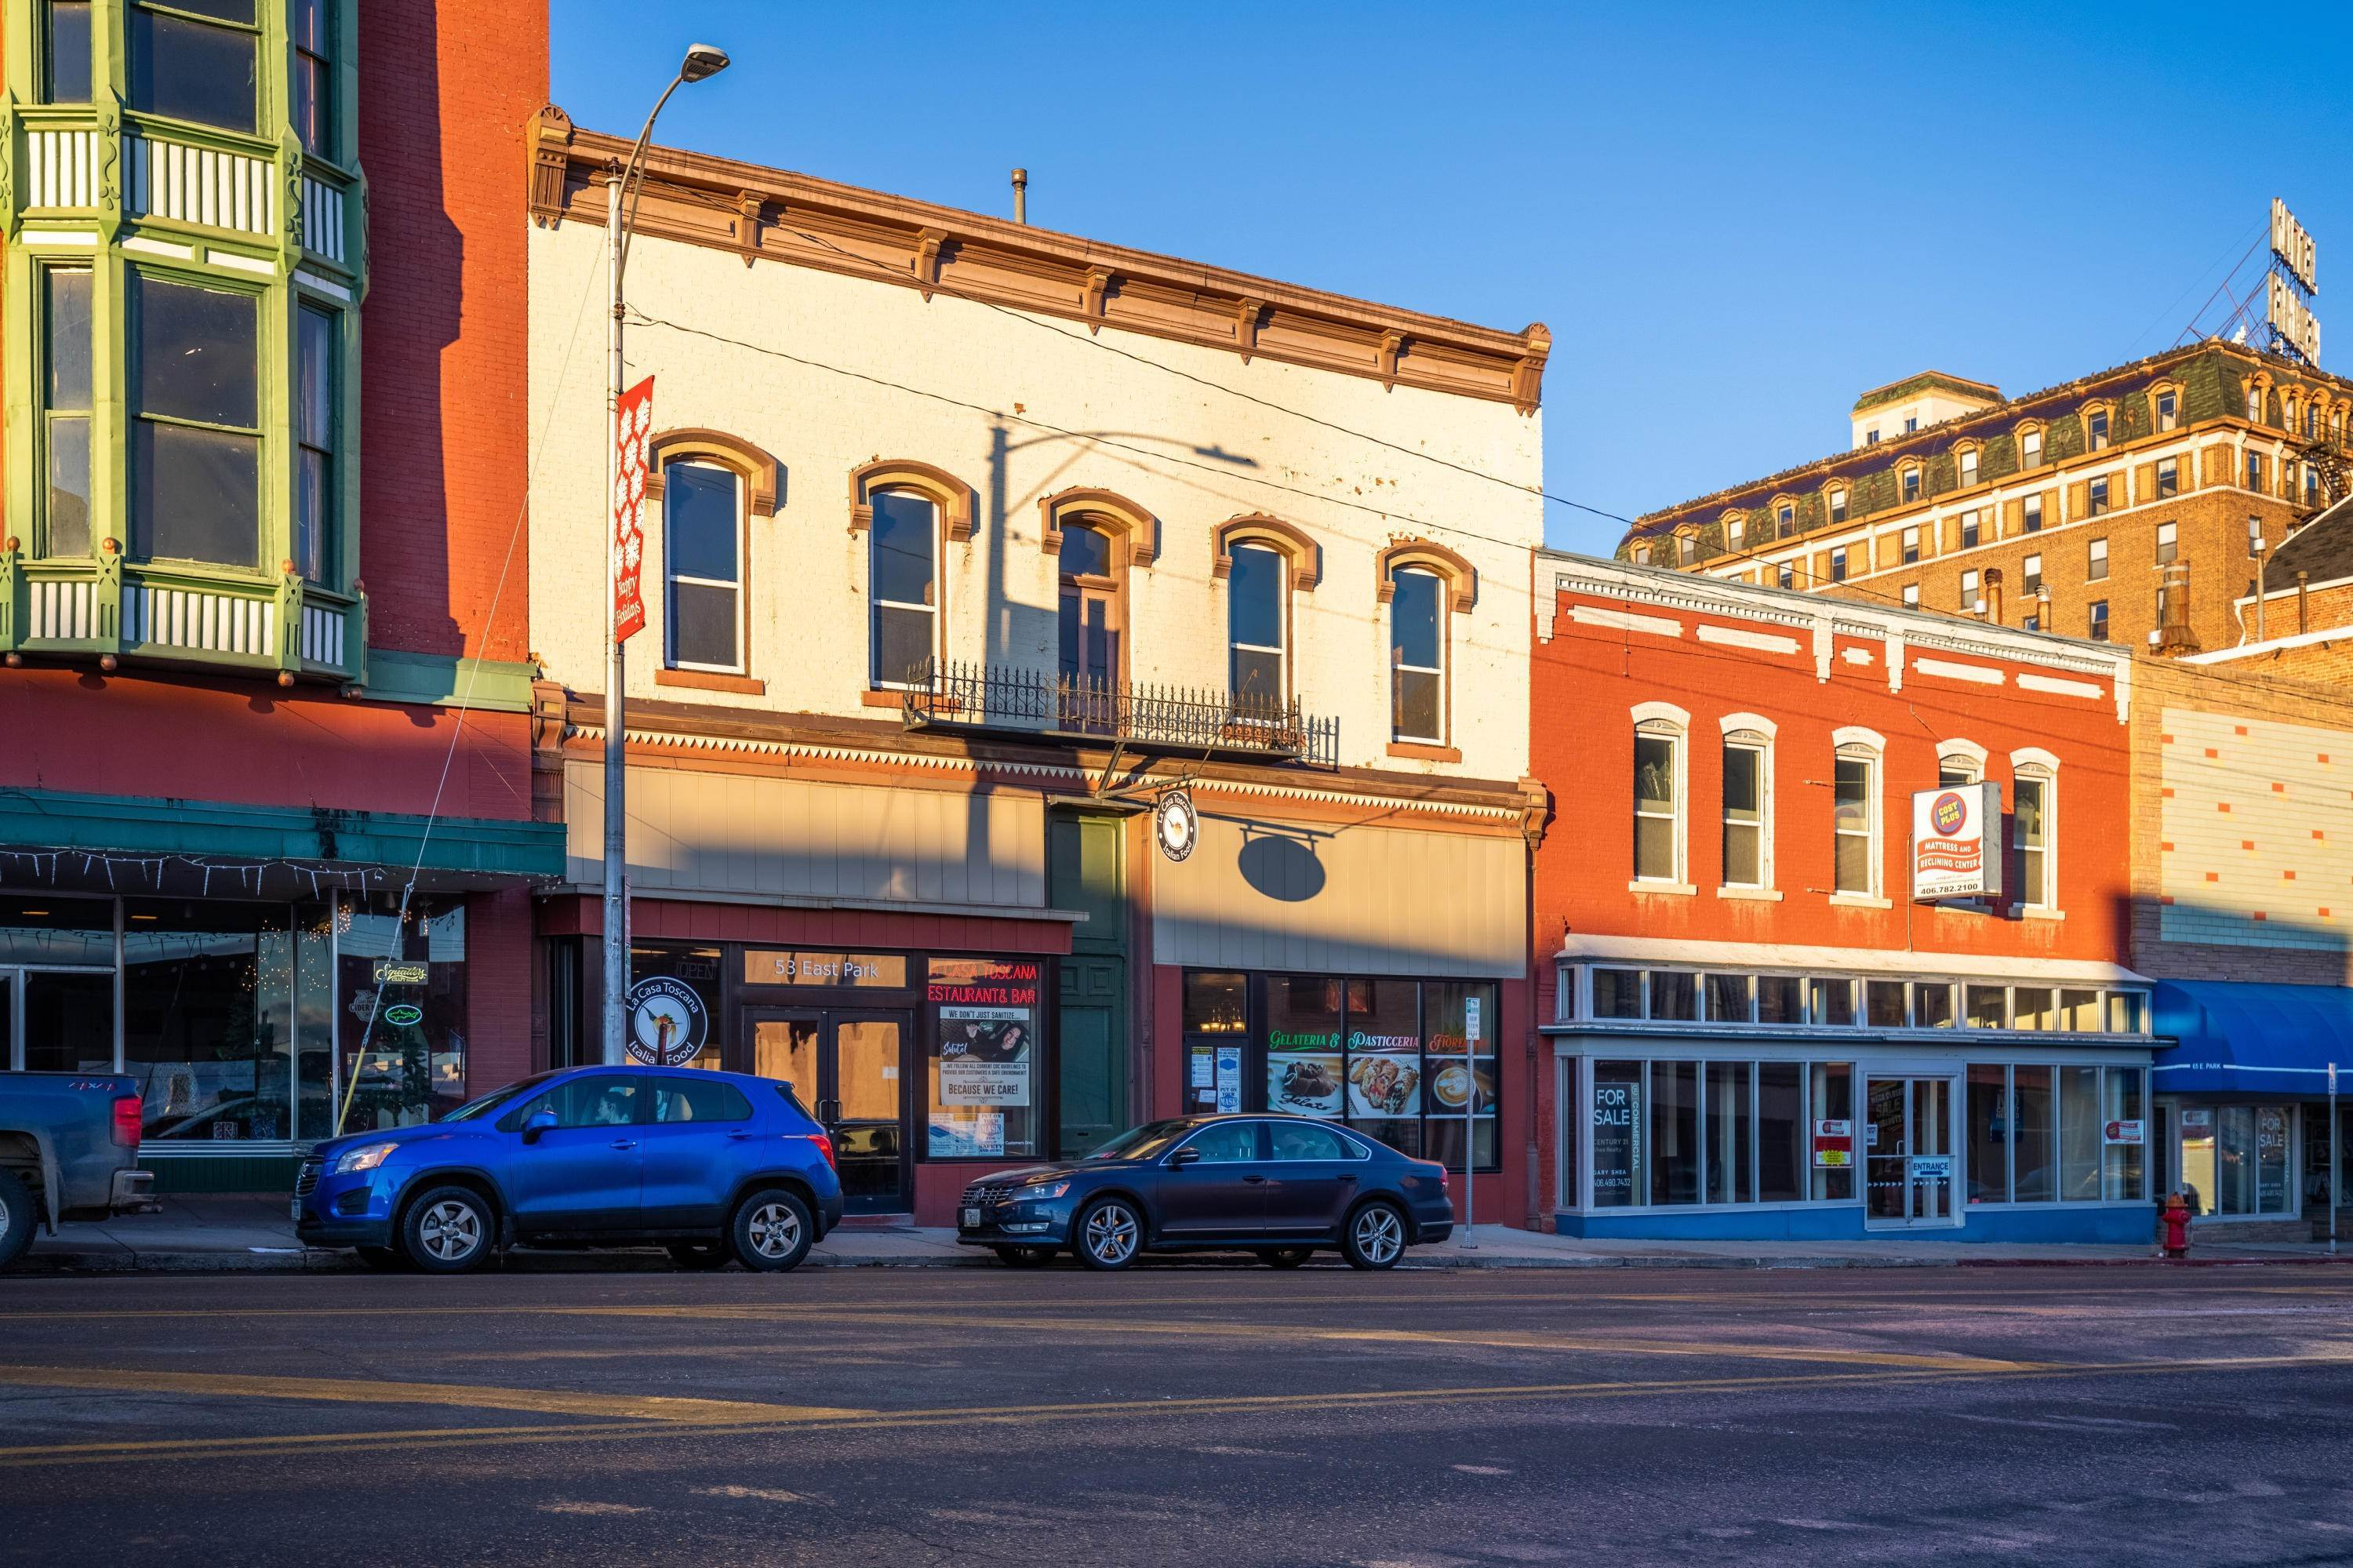 Commercial for Sale at 53 East Park Street Butte, Montana 59701 United States